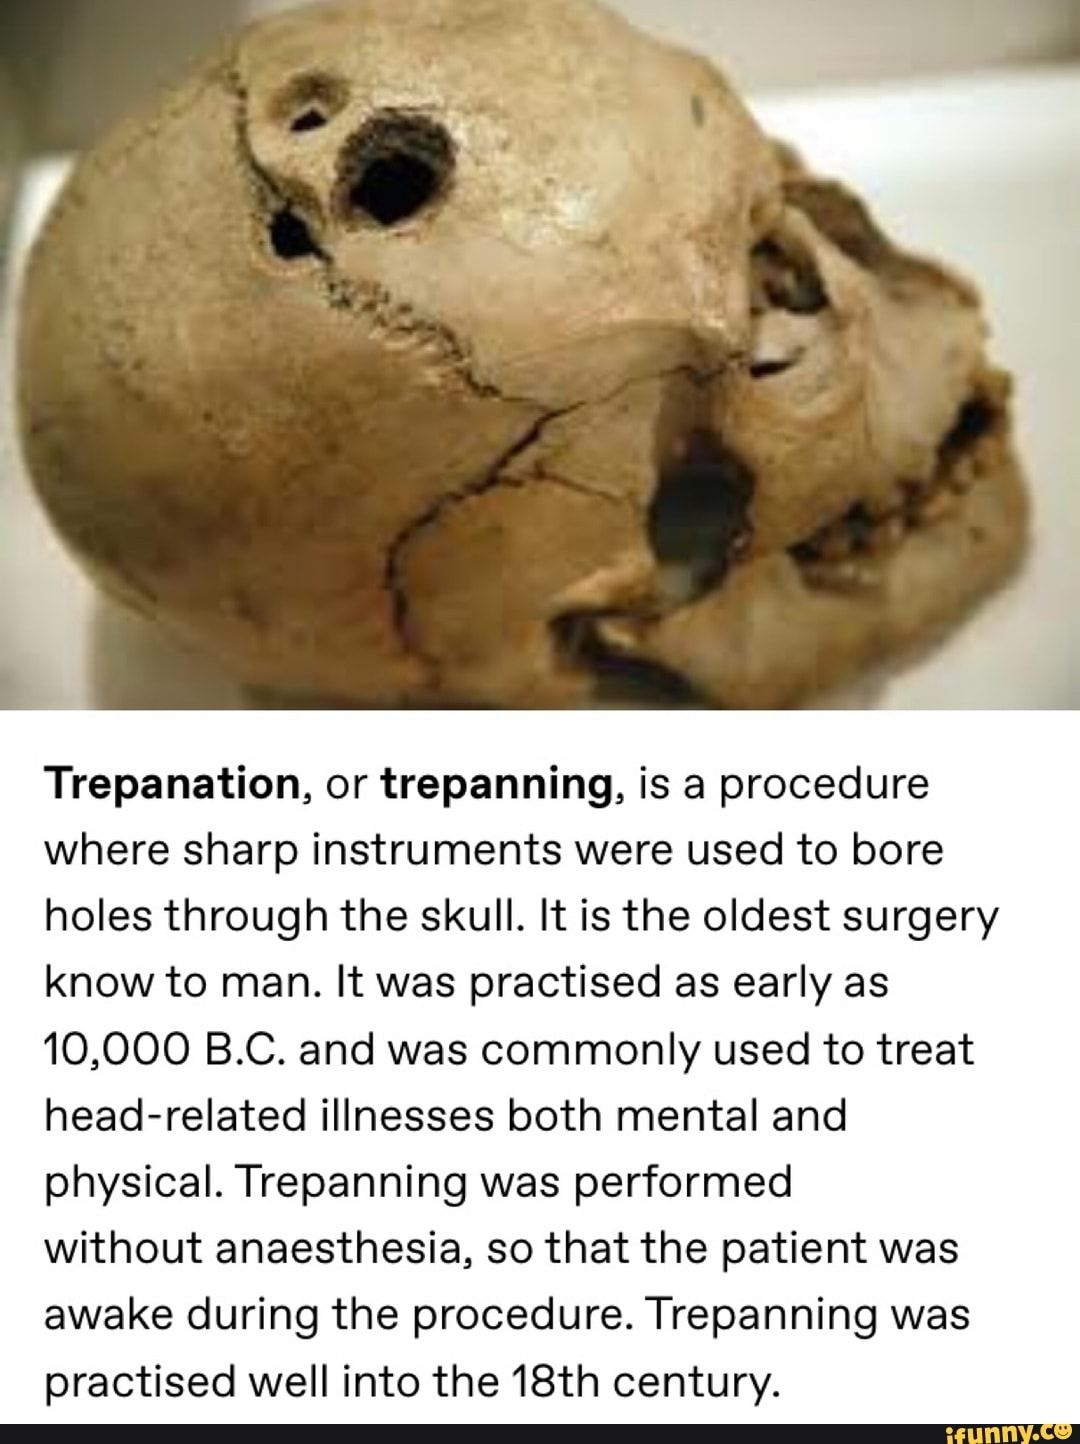 Trepanation Or Trepanning Is A Procedure Where Sharp Instruments Were Used To Bore Holes Through The Skull It Is The Oldest Surgery Know To Man It Was Pract Surgery Old Things